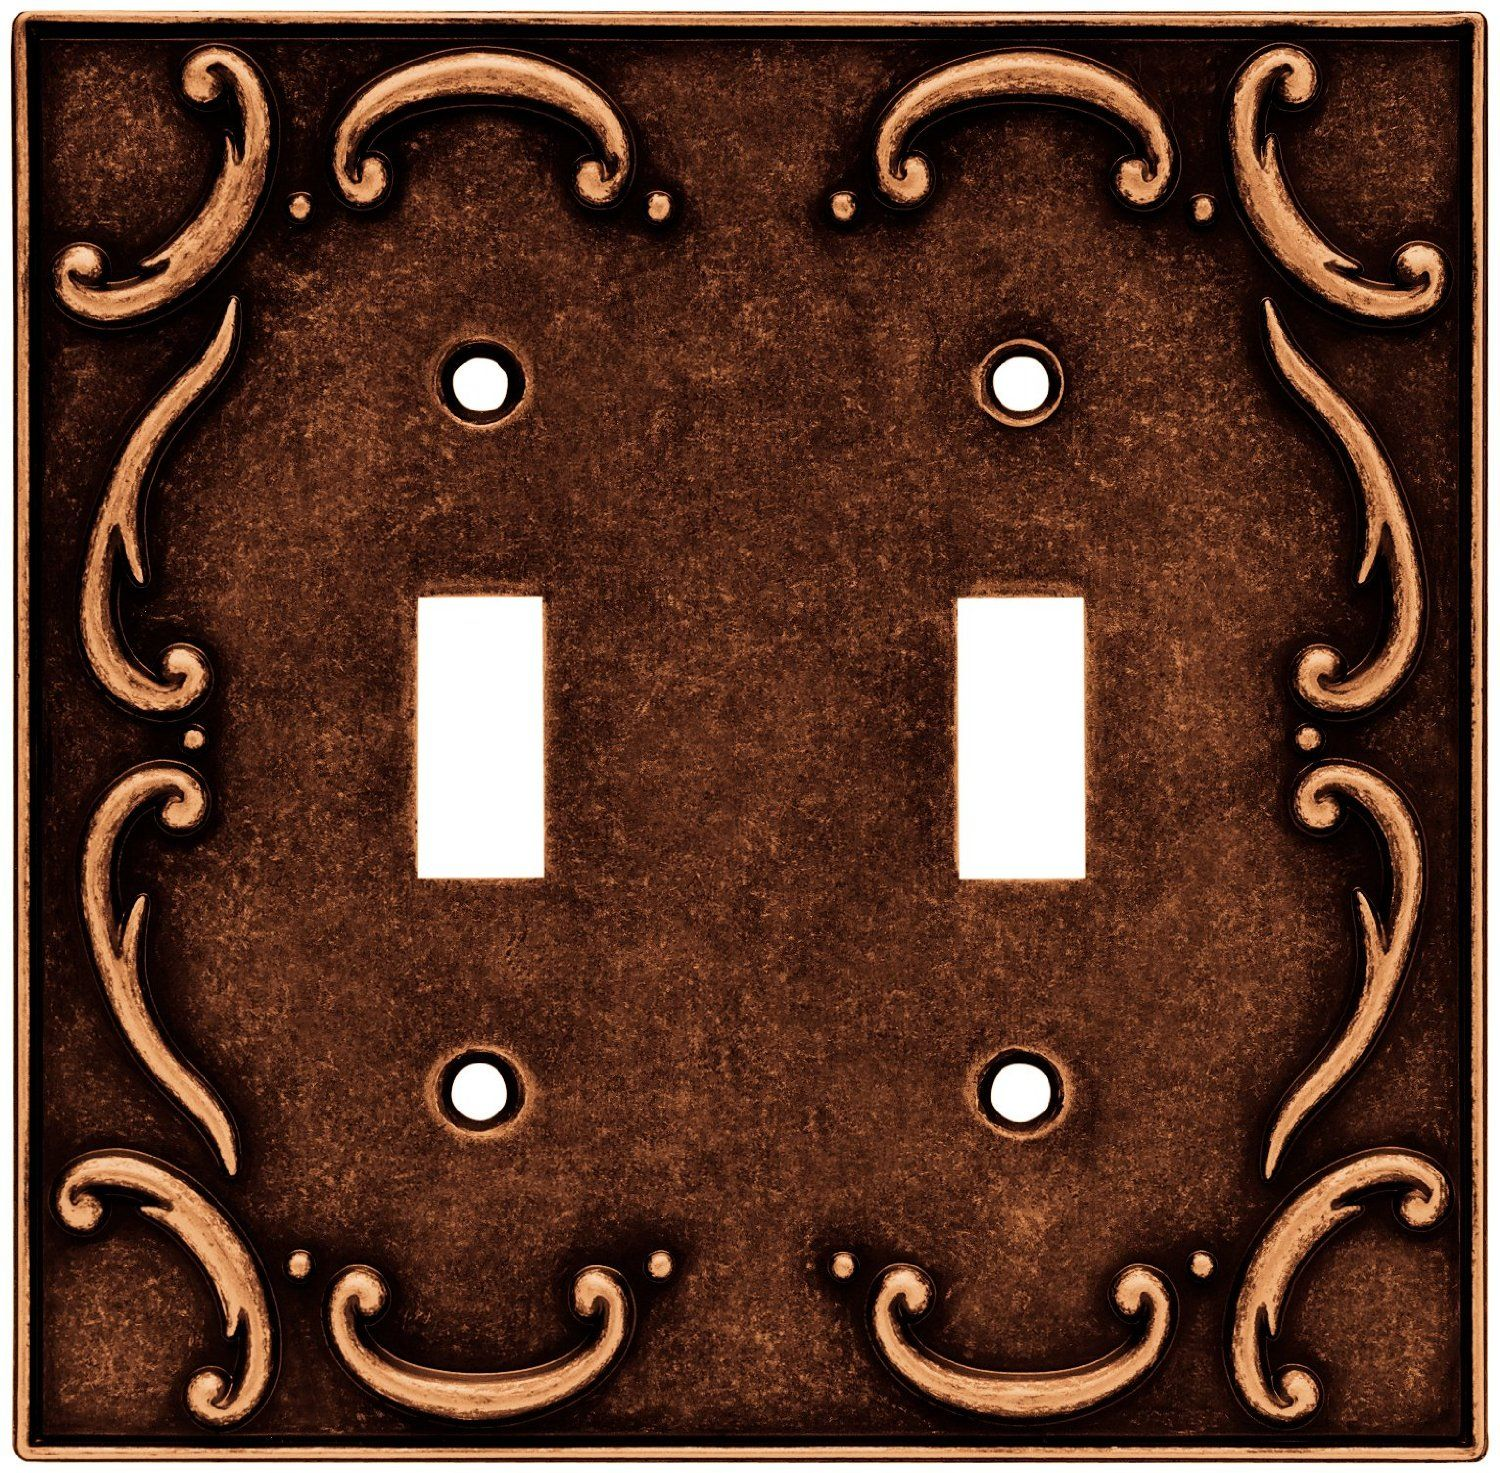 Fancy Switch Plate Covers Decorative Switch Plates The Best  New Home Concepts  Switch